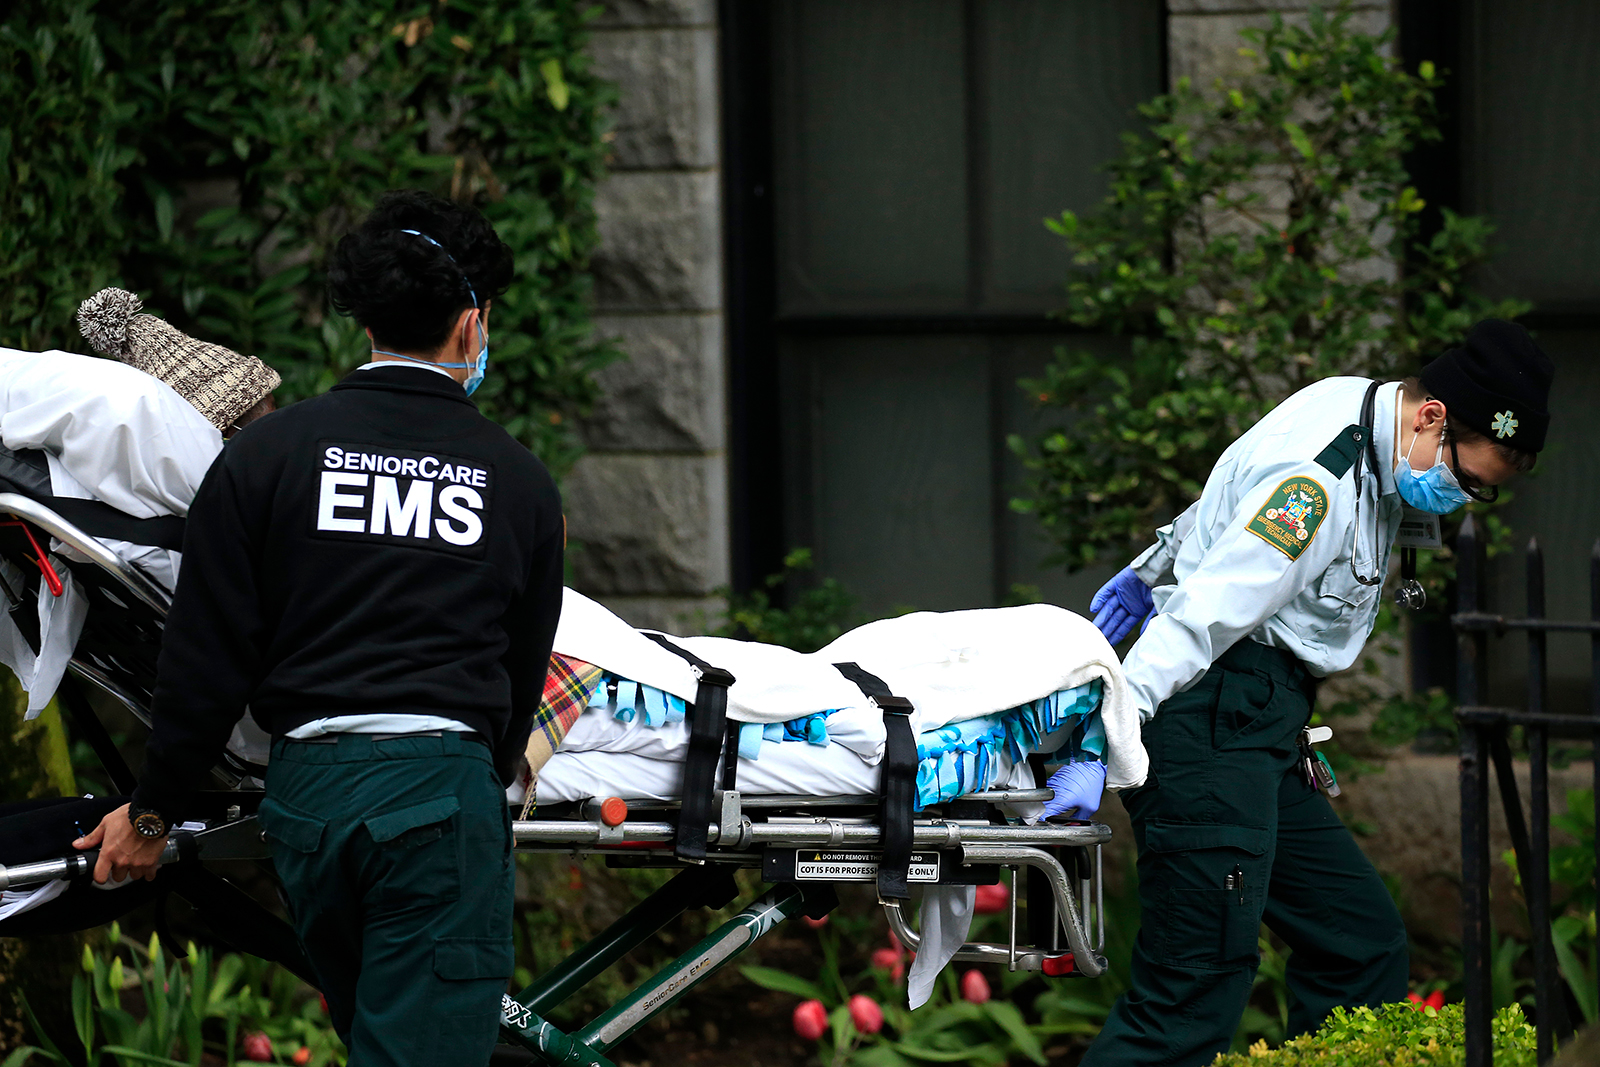 Emergency Medical Service workers unload a patient out of their ambulance at the Cobble Hill Health Center on April 18, in the Cobble Hill neighborhood of the Brooklyn borough of New York City. The nursing home has had at least 55 COVID-19 reported deaths.